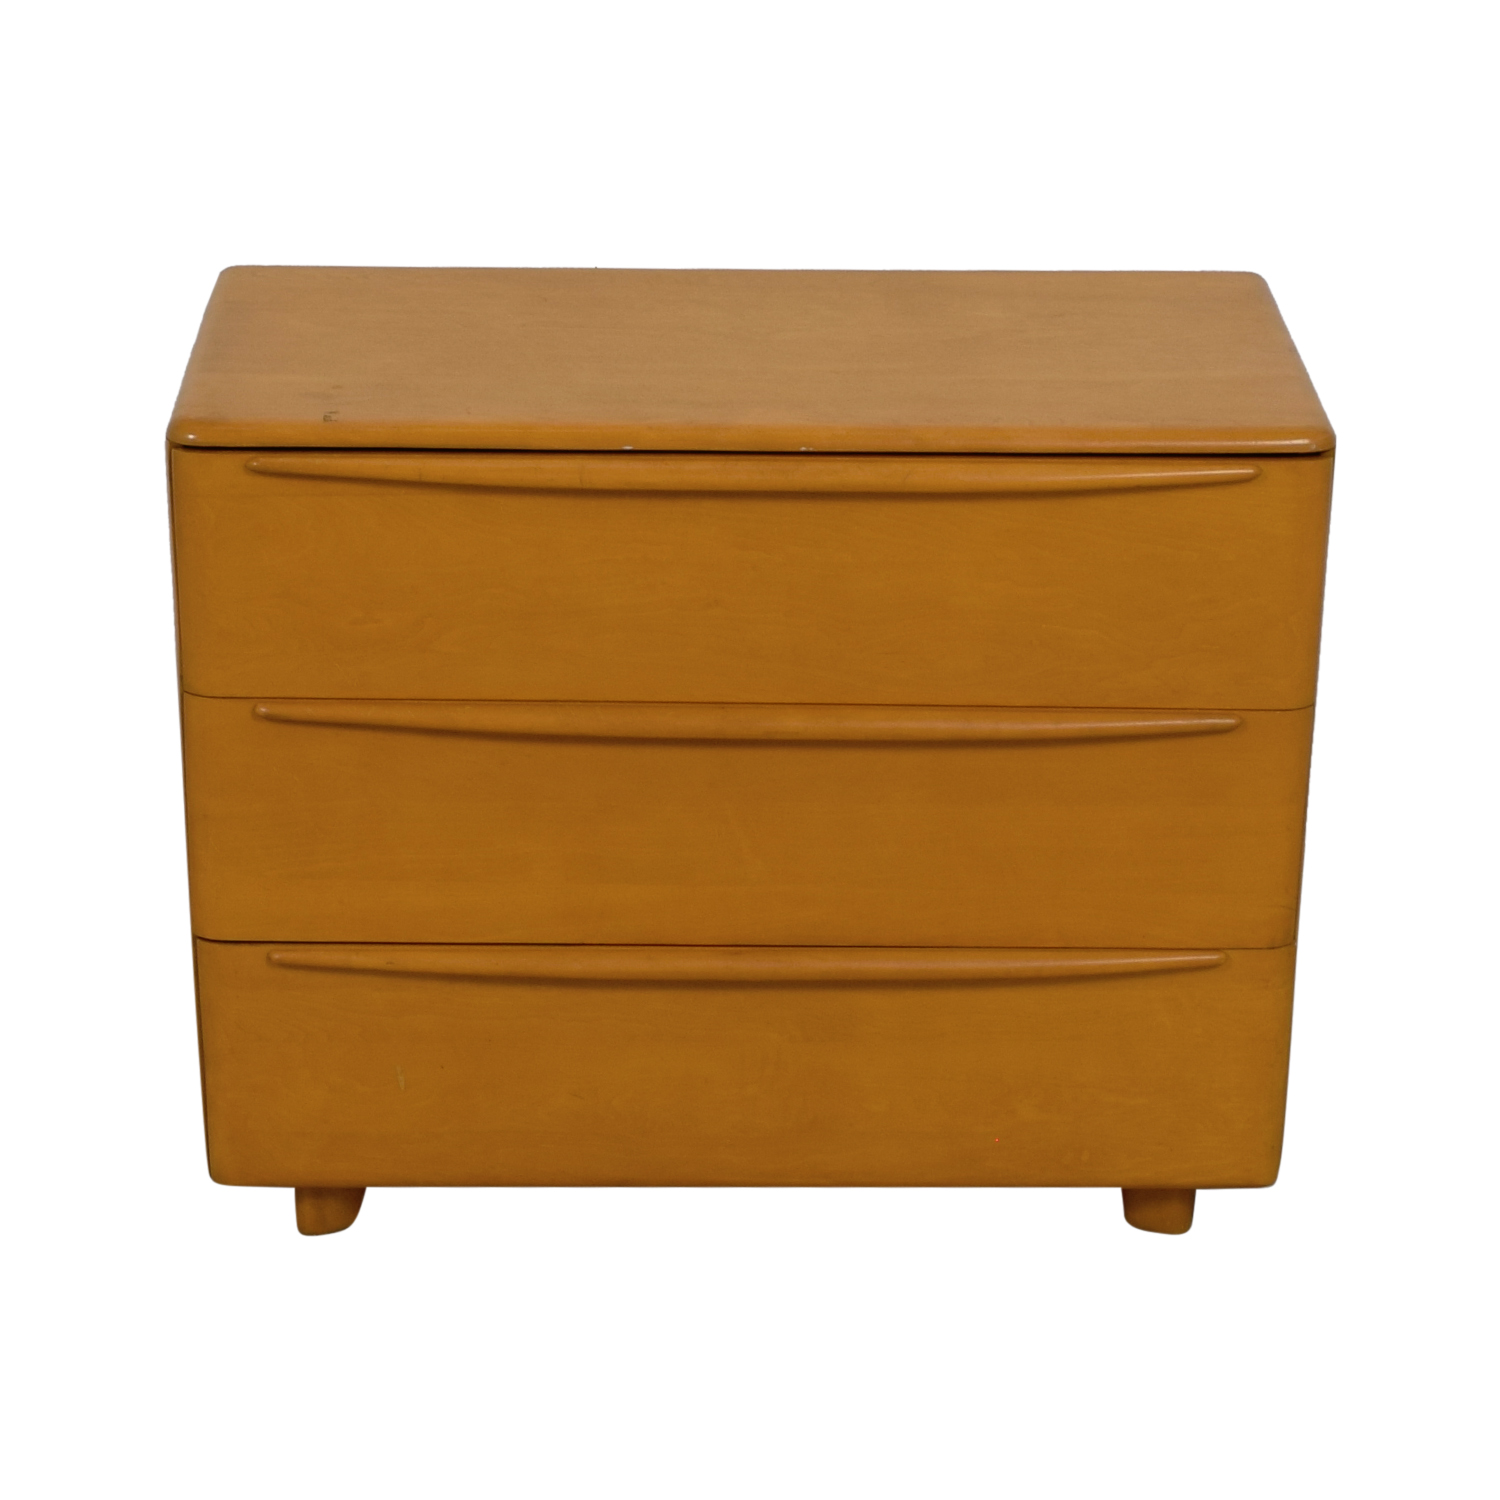 Heywood-Wakefield Encore Wheat Three-Drawer Dresser / Dressers